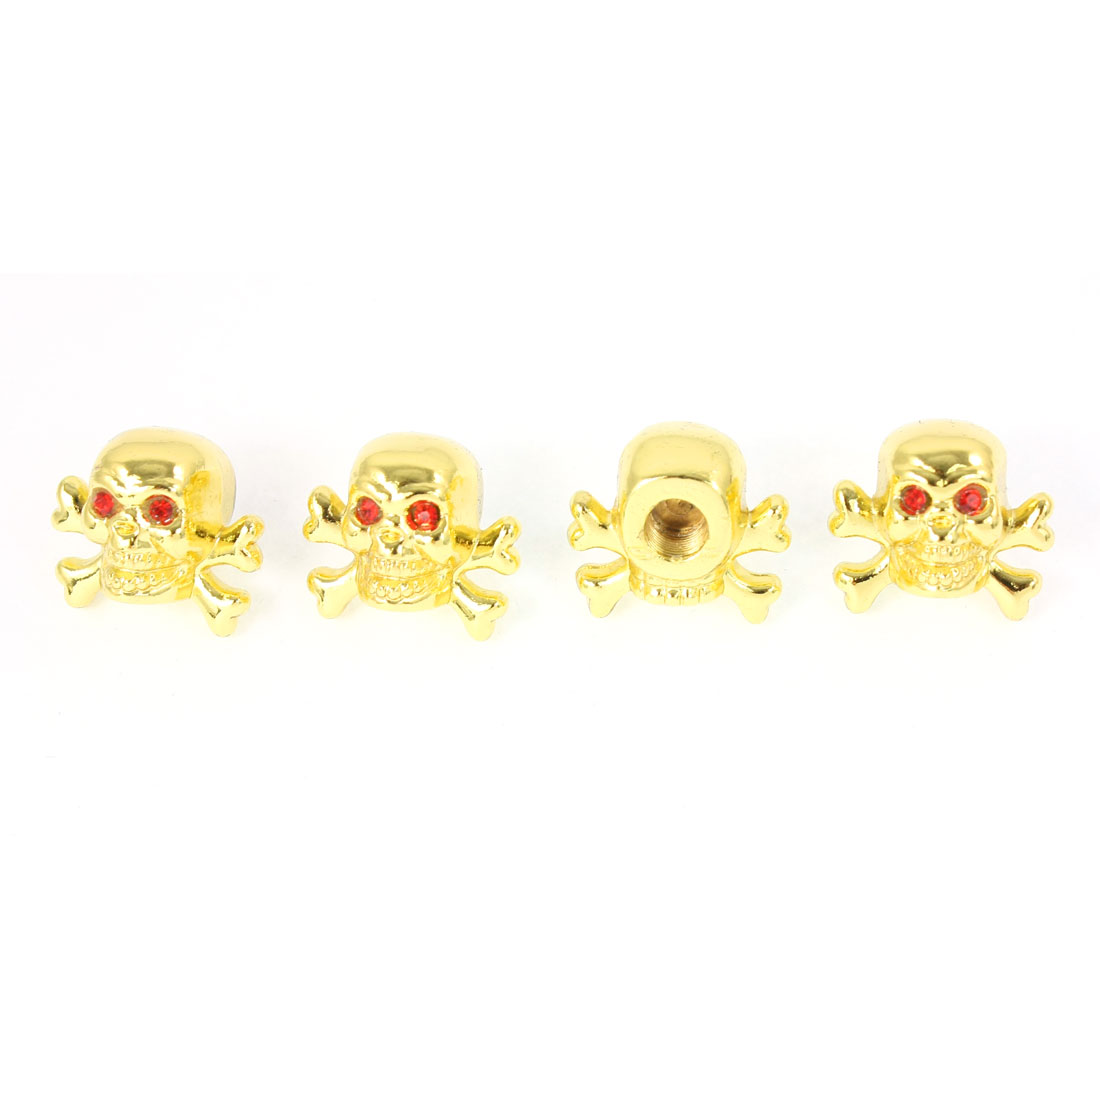 4 Pcs Red Rhinestones Eyes Skull Shape Metal Car Tire Valve Cover Gold Tone